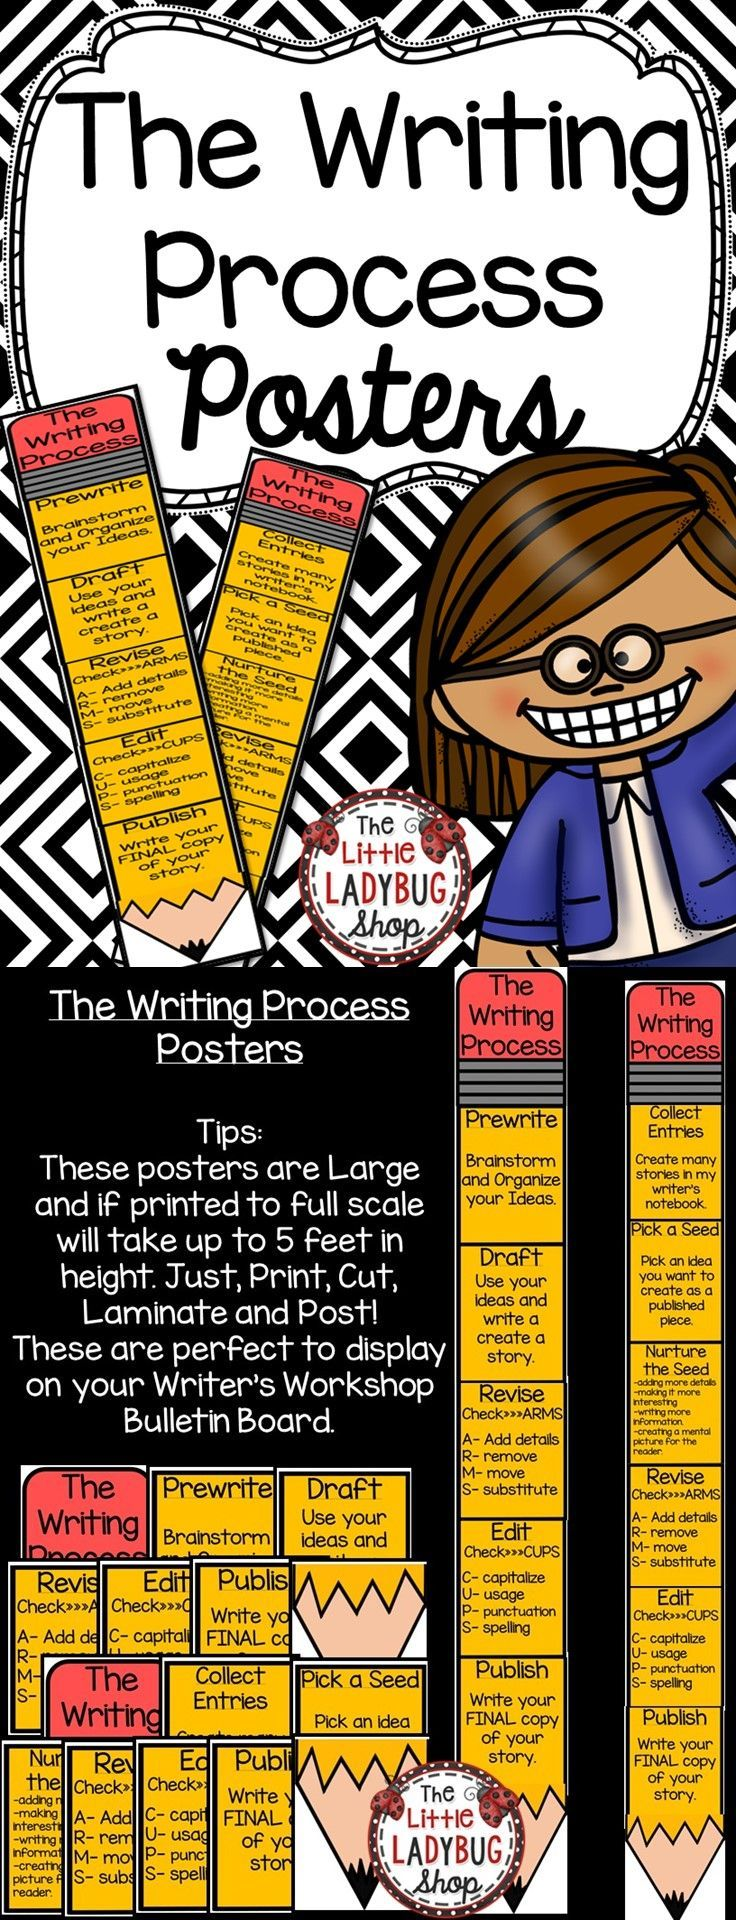 Writing Process | Writing Process | Writing Process  Writing Process Pencil Posters. 2 Sets of the Writing Process Posters are included in this set for you to display in your classroom. I used these charts and used clothes pins with students names to move down the chart as they were writing in the Writing Process. We used 2 different charts and I am attaching both here for you to decide which works for your classroom setting.